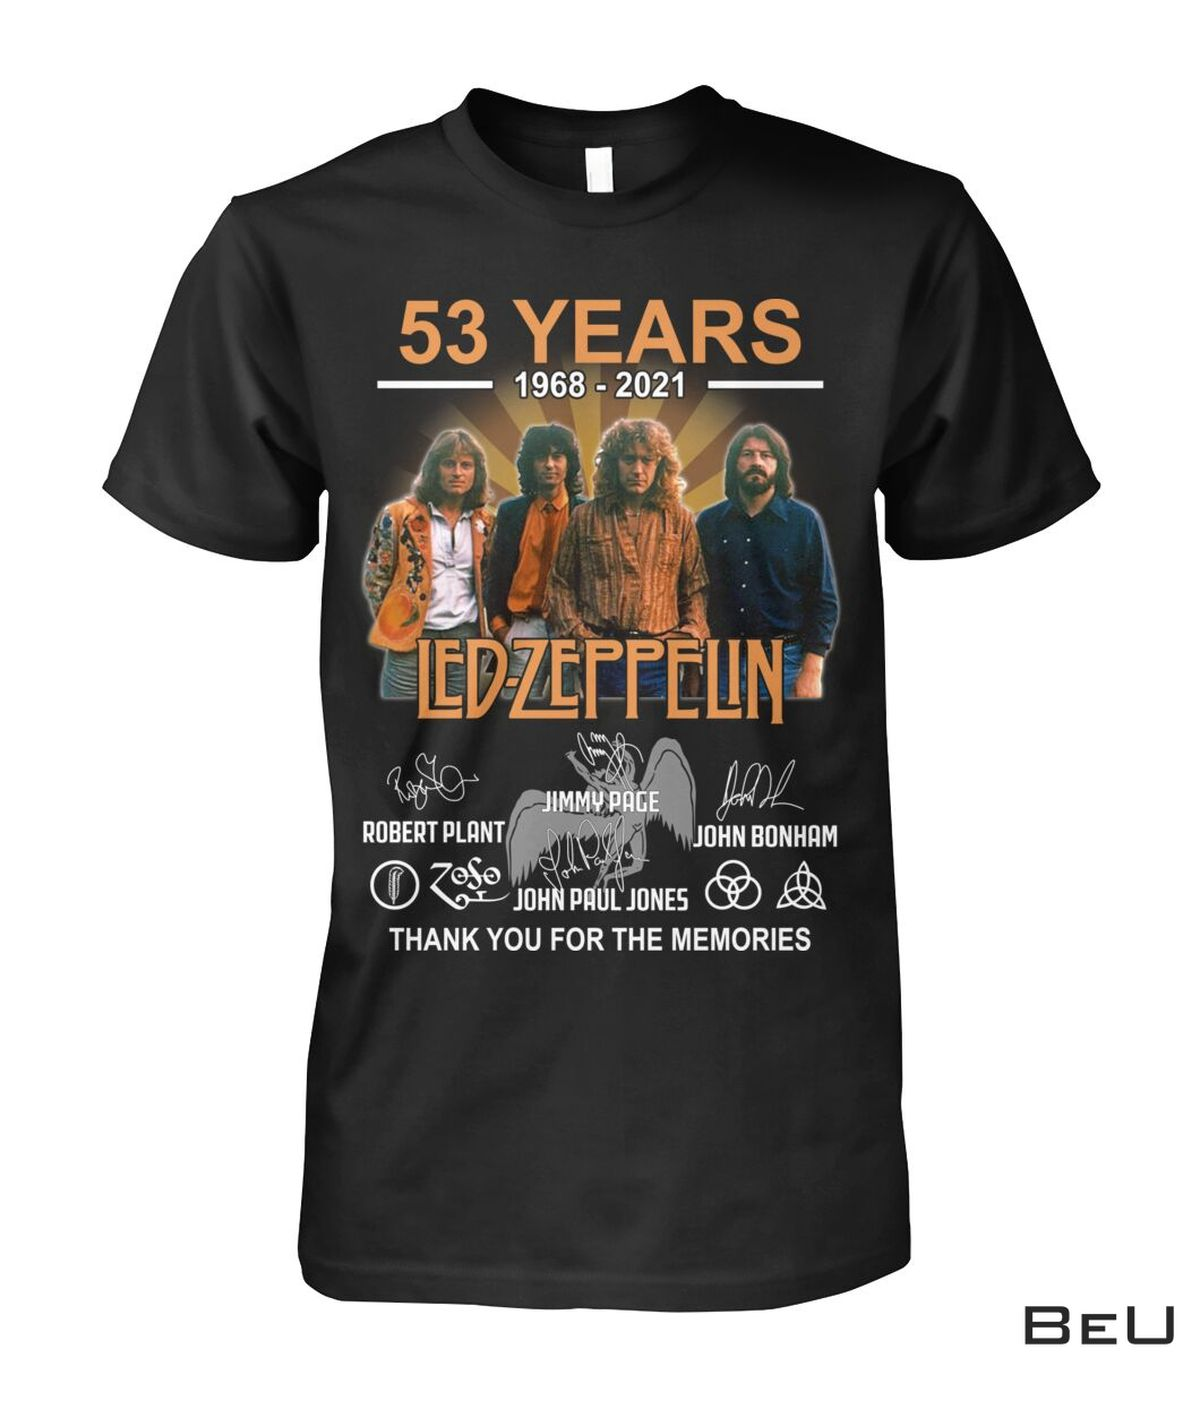 Led Zeppelin 53 Years Anniversary Thank You For The Memories Shirt, hoodie, tank top